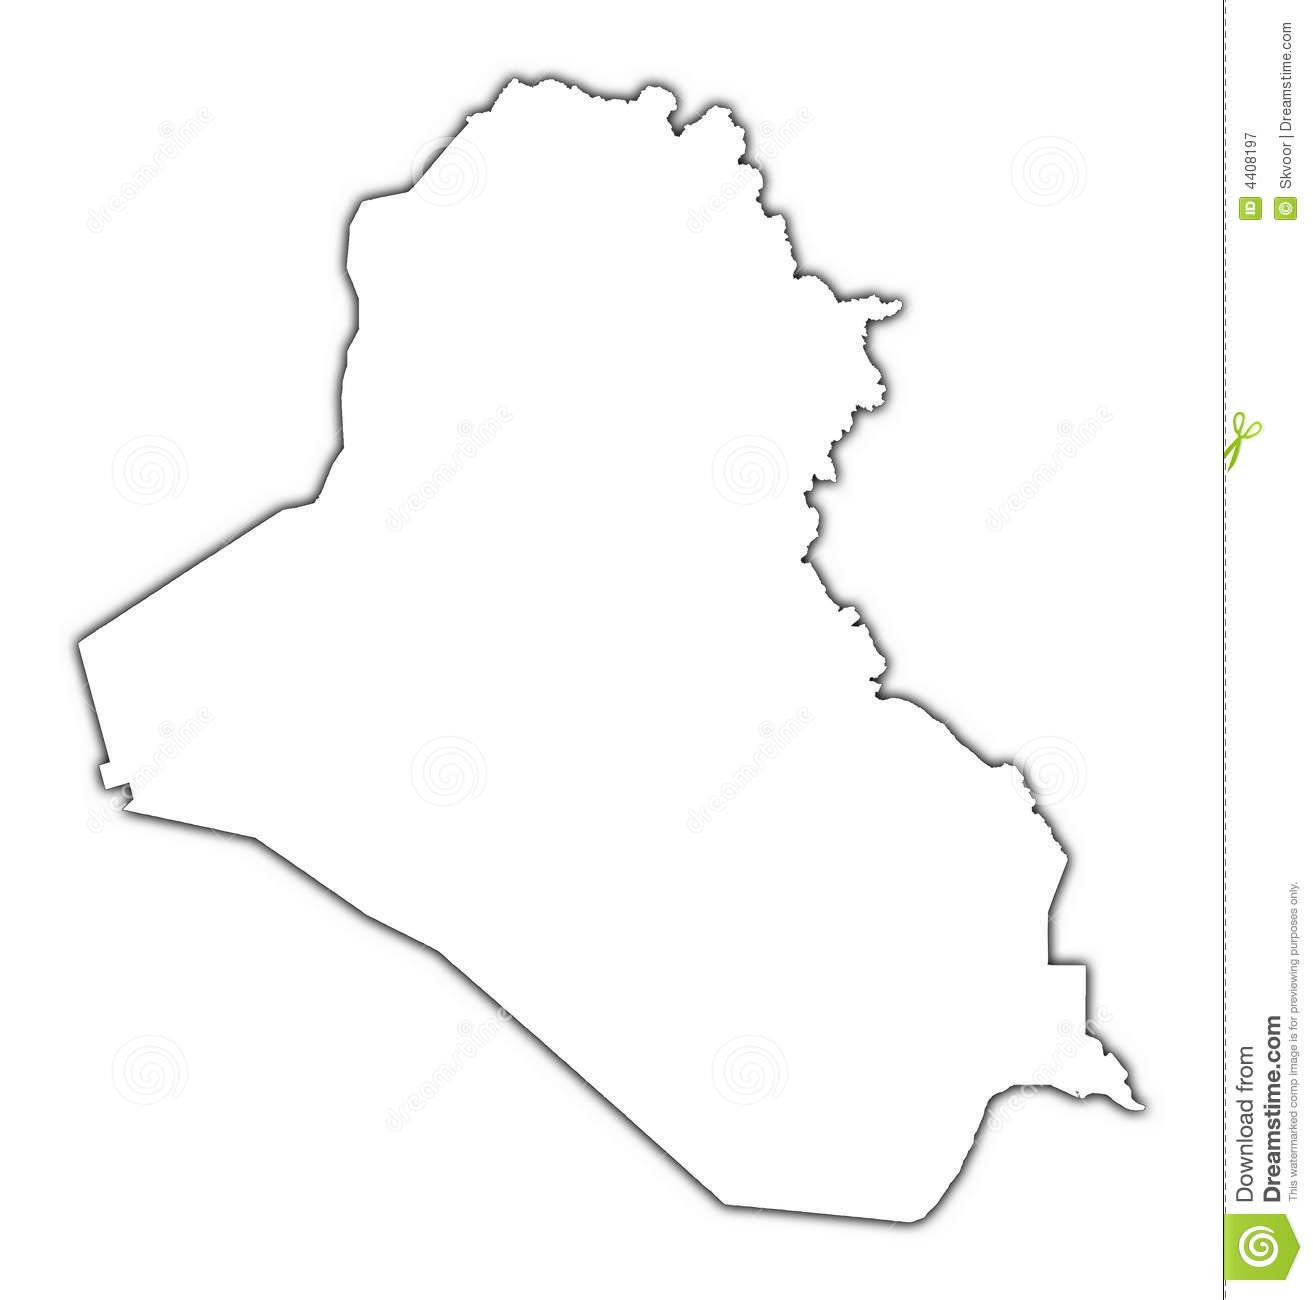 Iraq outline map stock illustration  Illustration of black - 4408197